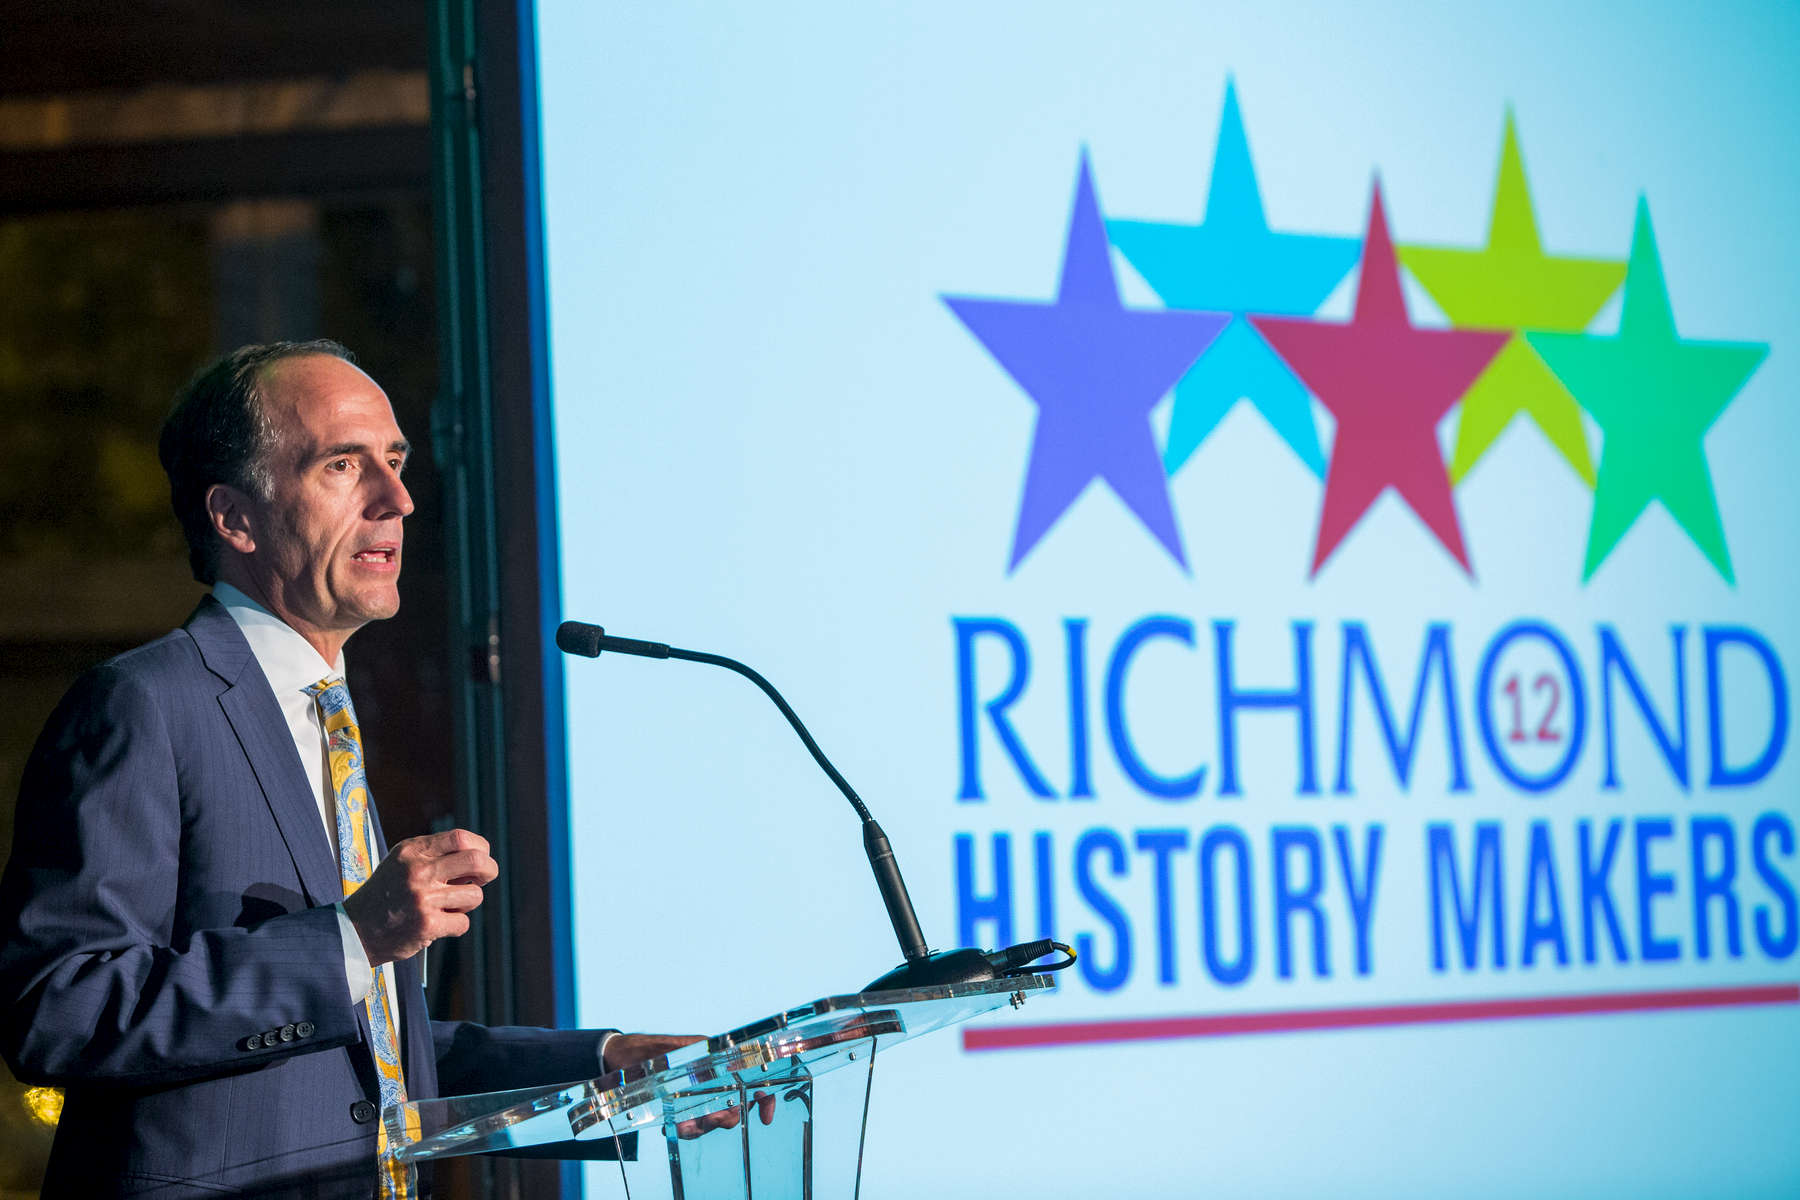 Photos from Richmond History Makers at The Valentine Museum.